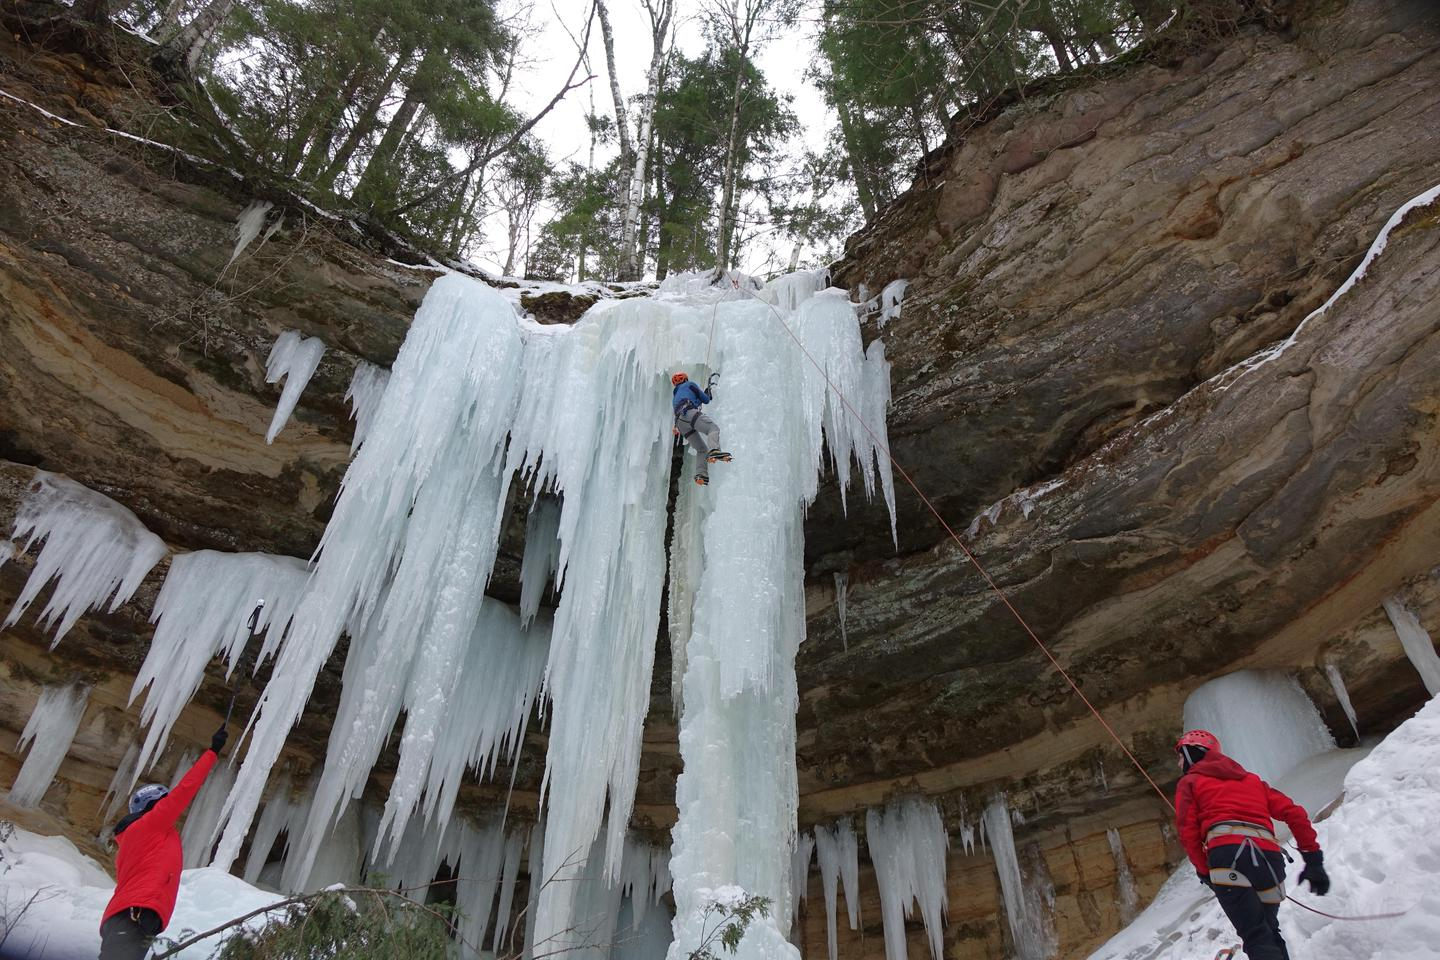 Ice ClimbingIce climbing is a popular winter activity.